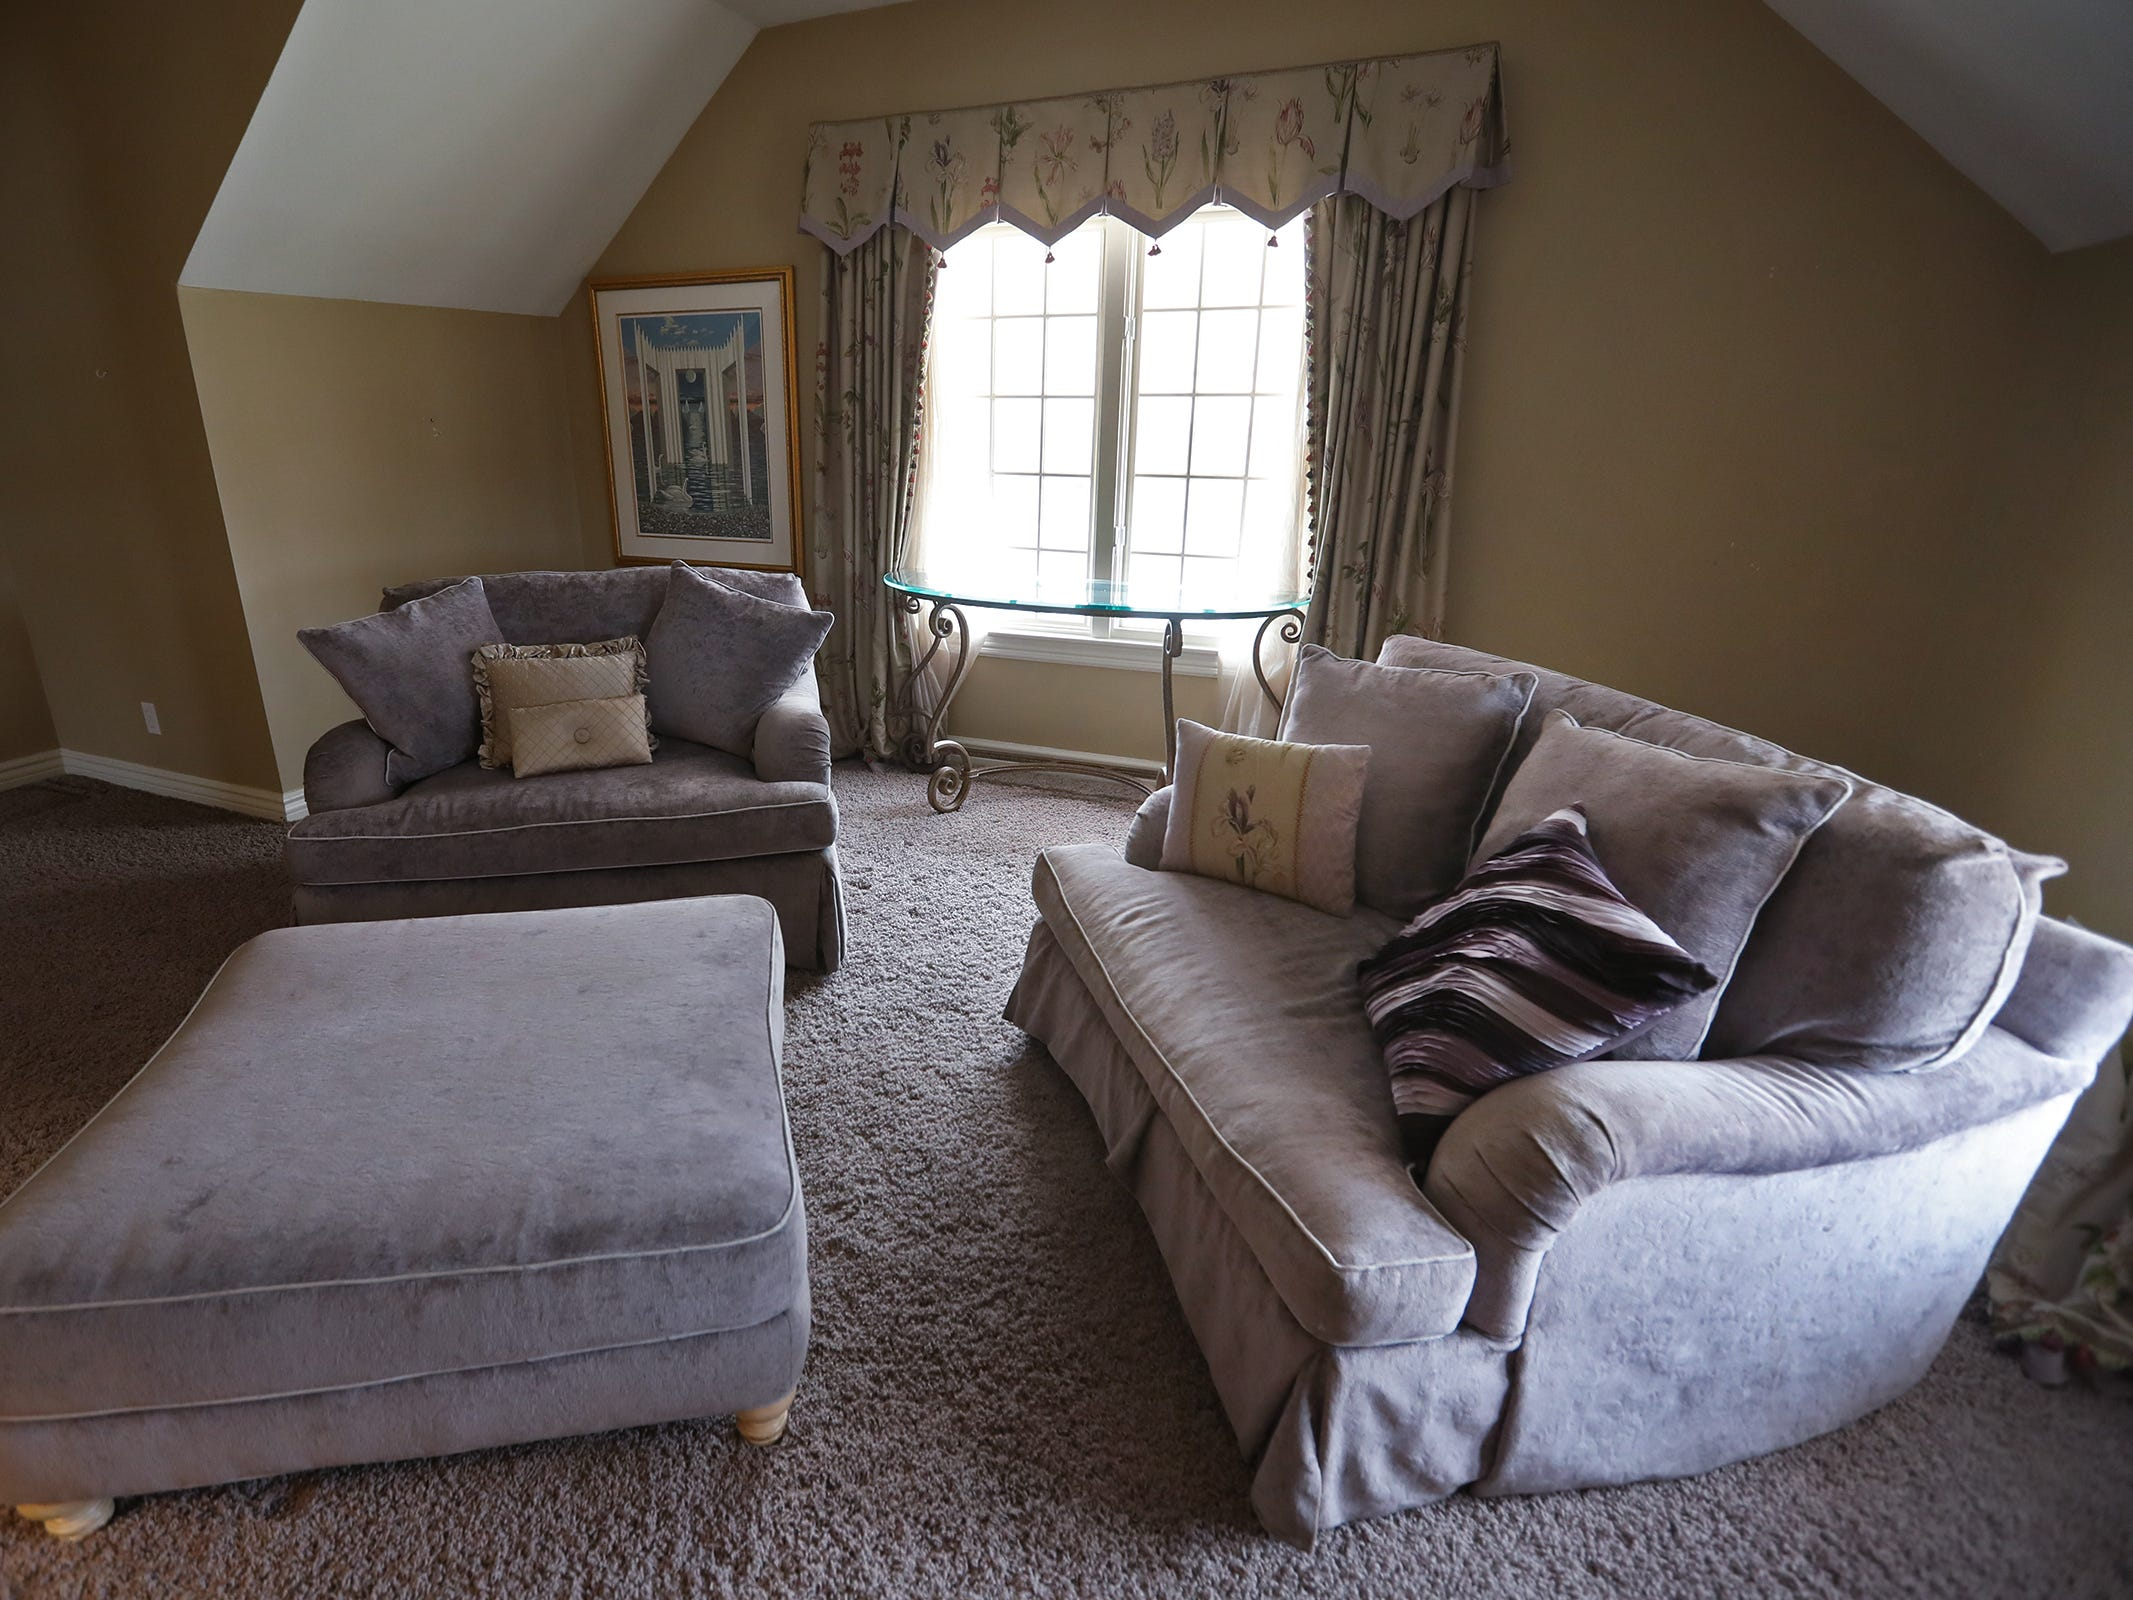 This is a sitting area that can be a bedroom in the home at 1270 Laurelwood Ct. in Carmel, Friday, Dec. 28, 2018.